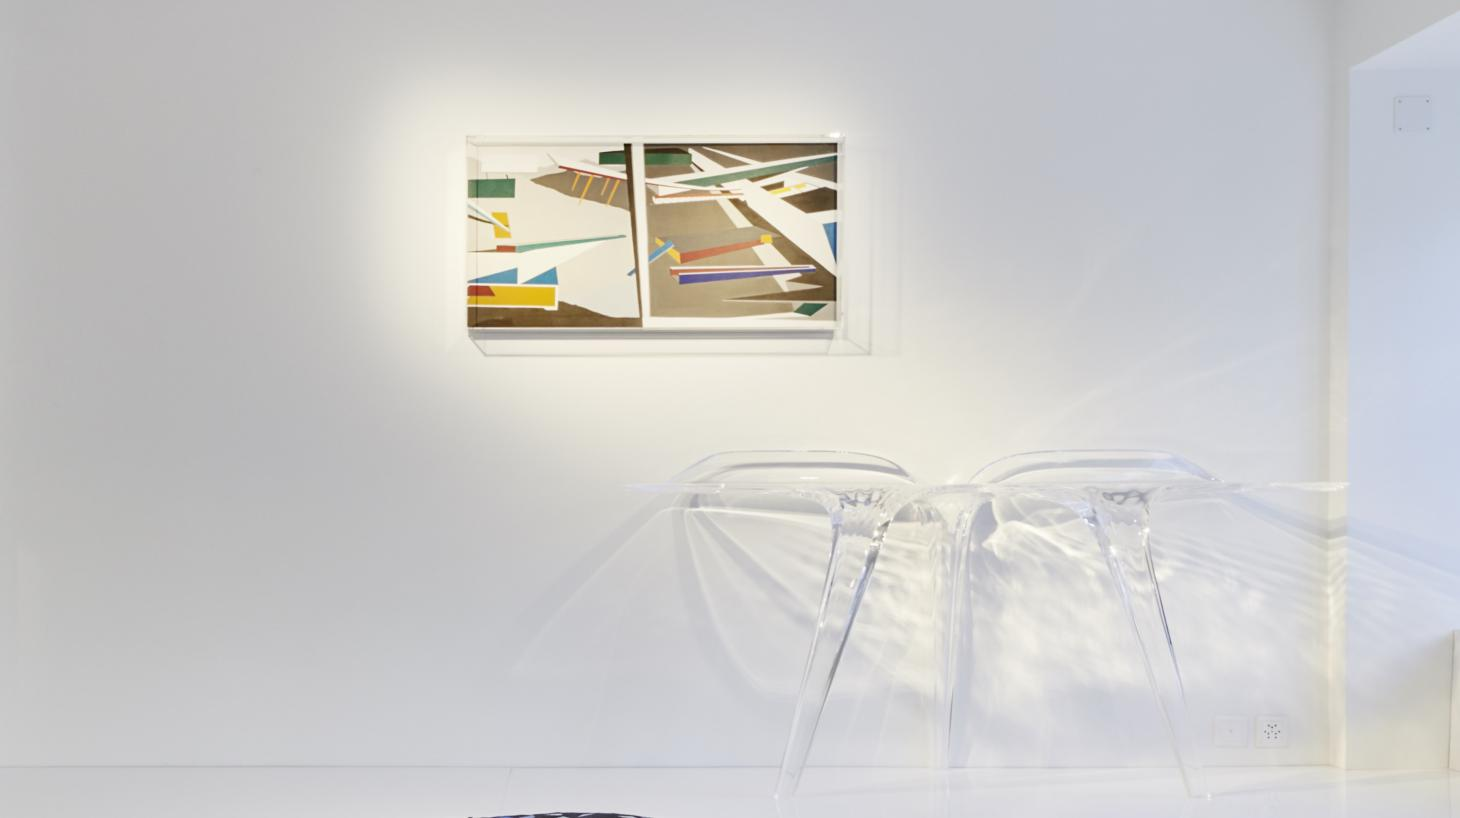 Clear acrylic table by Zaha Hadid and painting on wall